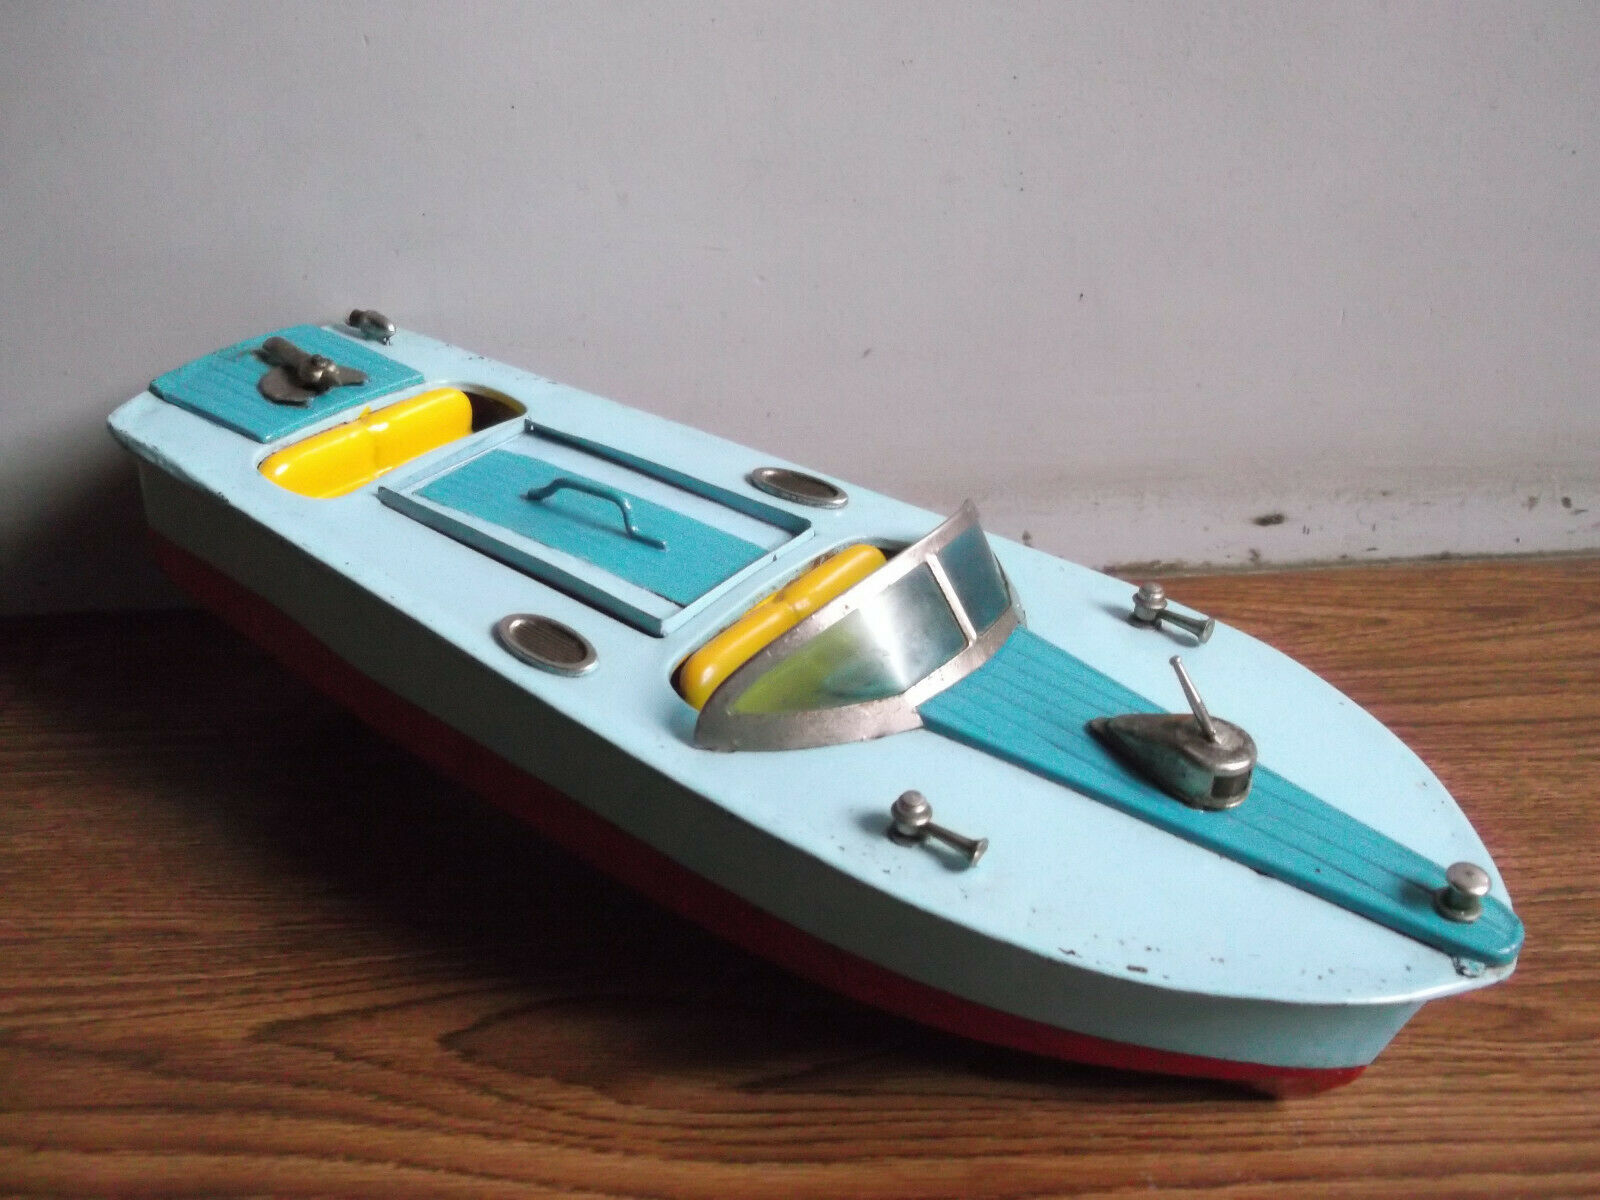 Rare vintage battery powered tin toy motor boat made in Japan (Working order).